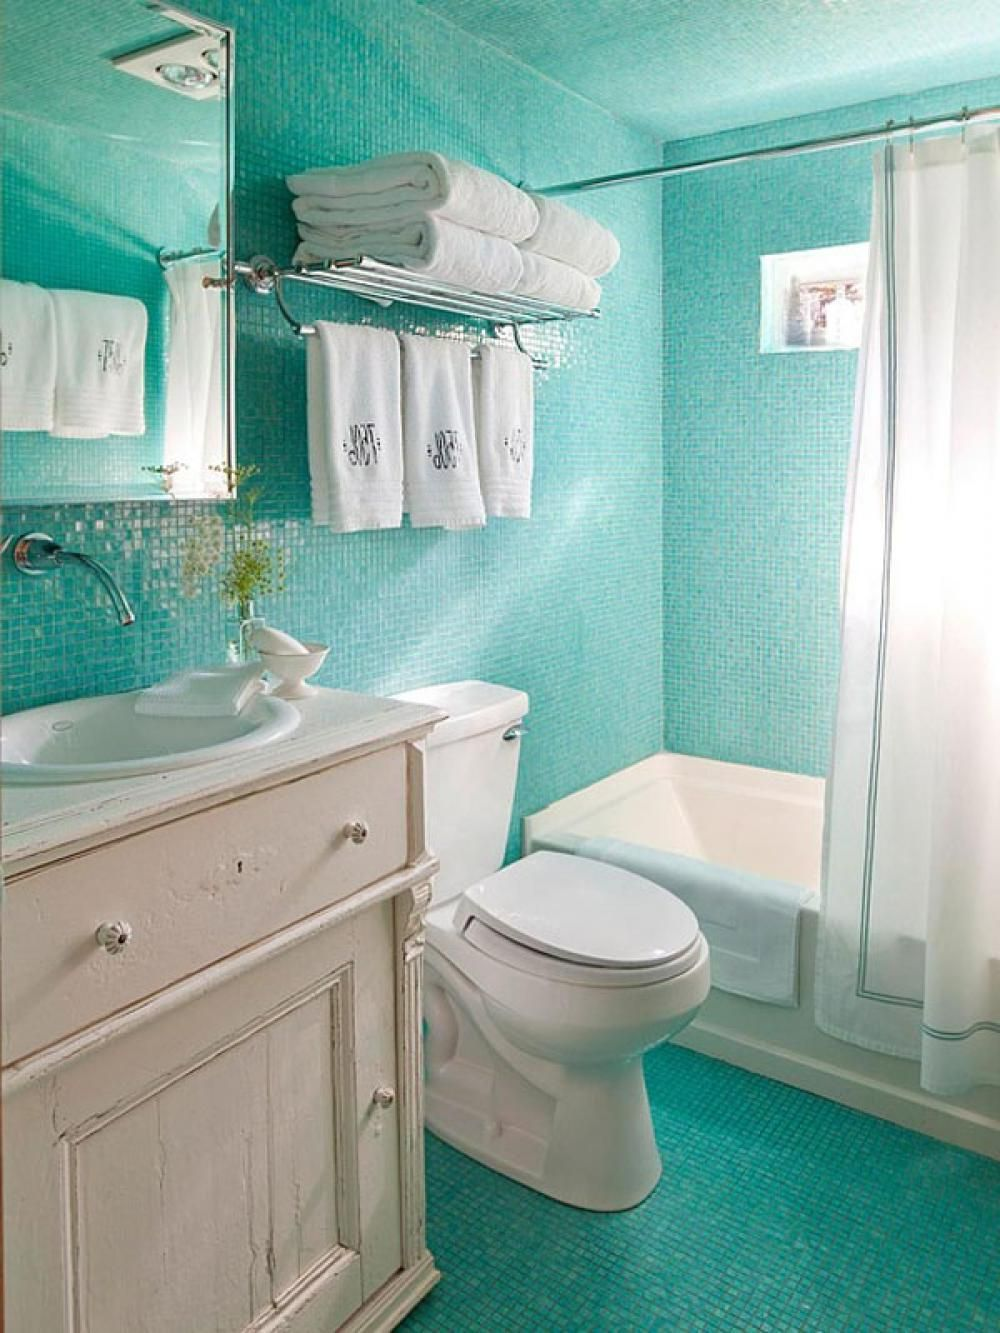 Chic Turquoise Mosaic Tiles Ocean Inspired Bathroom With White - Turquoise bath towels for small bathroom ideas